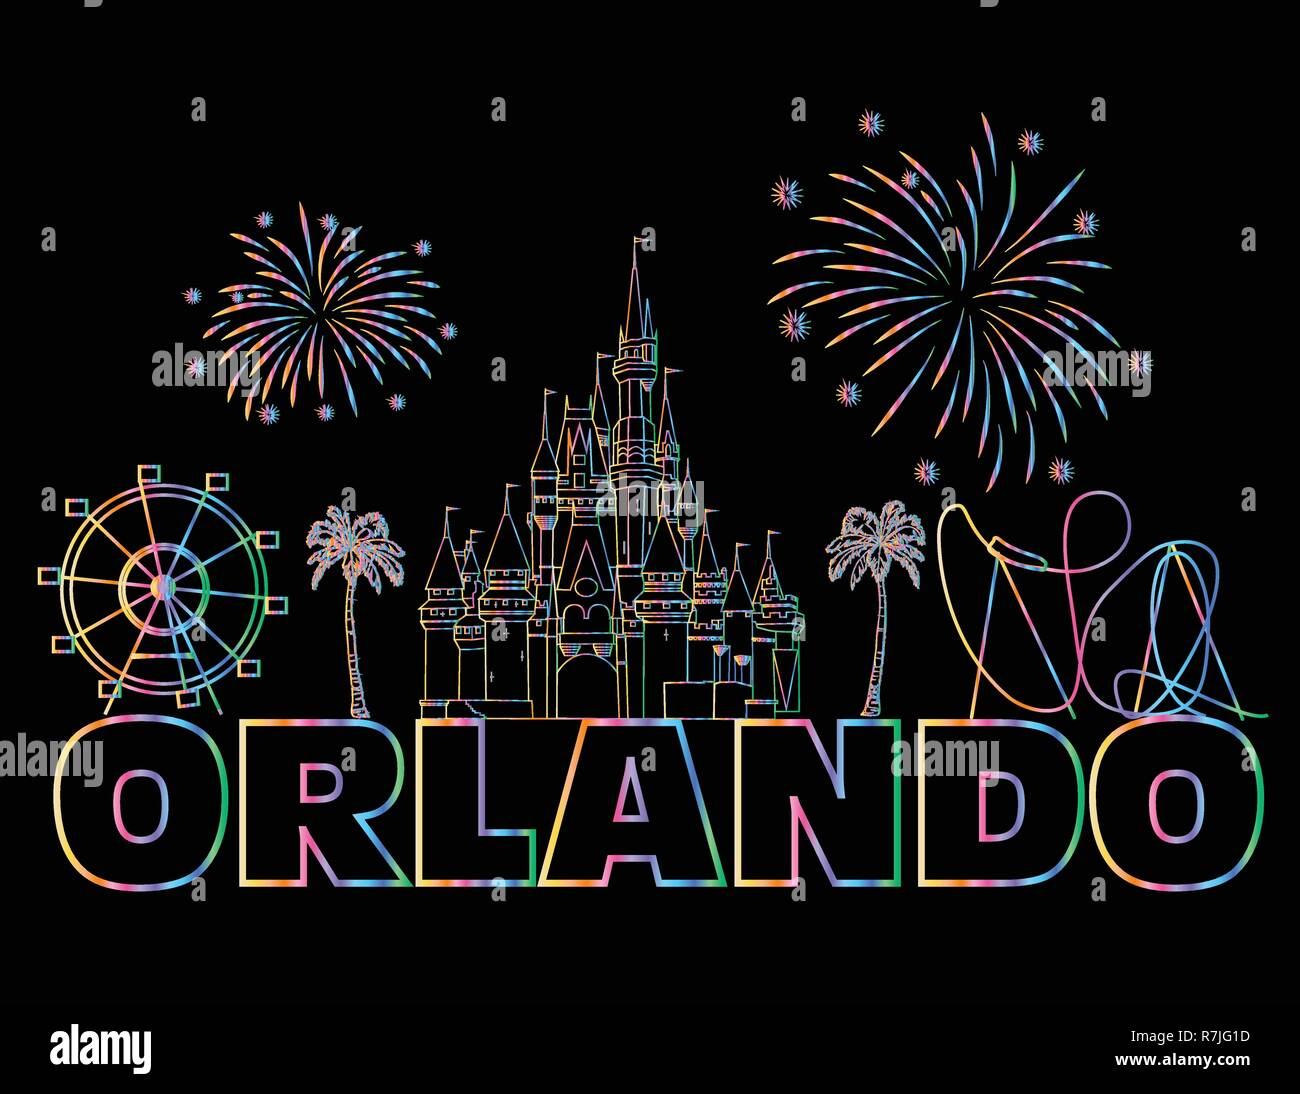 Orlando colorful lettering on black backround .  Vector with travel icons and fireworks. Art Postcard. - Stock Vector